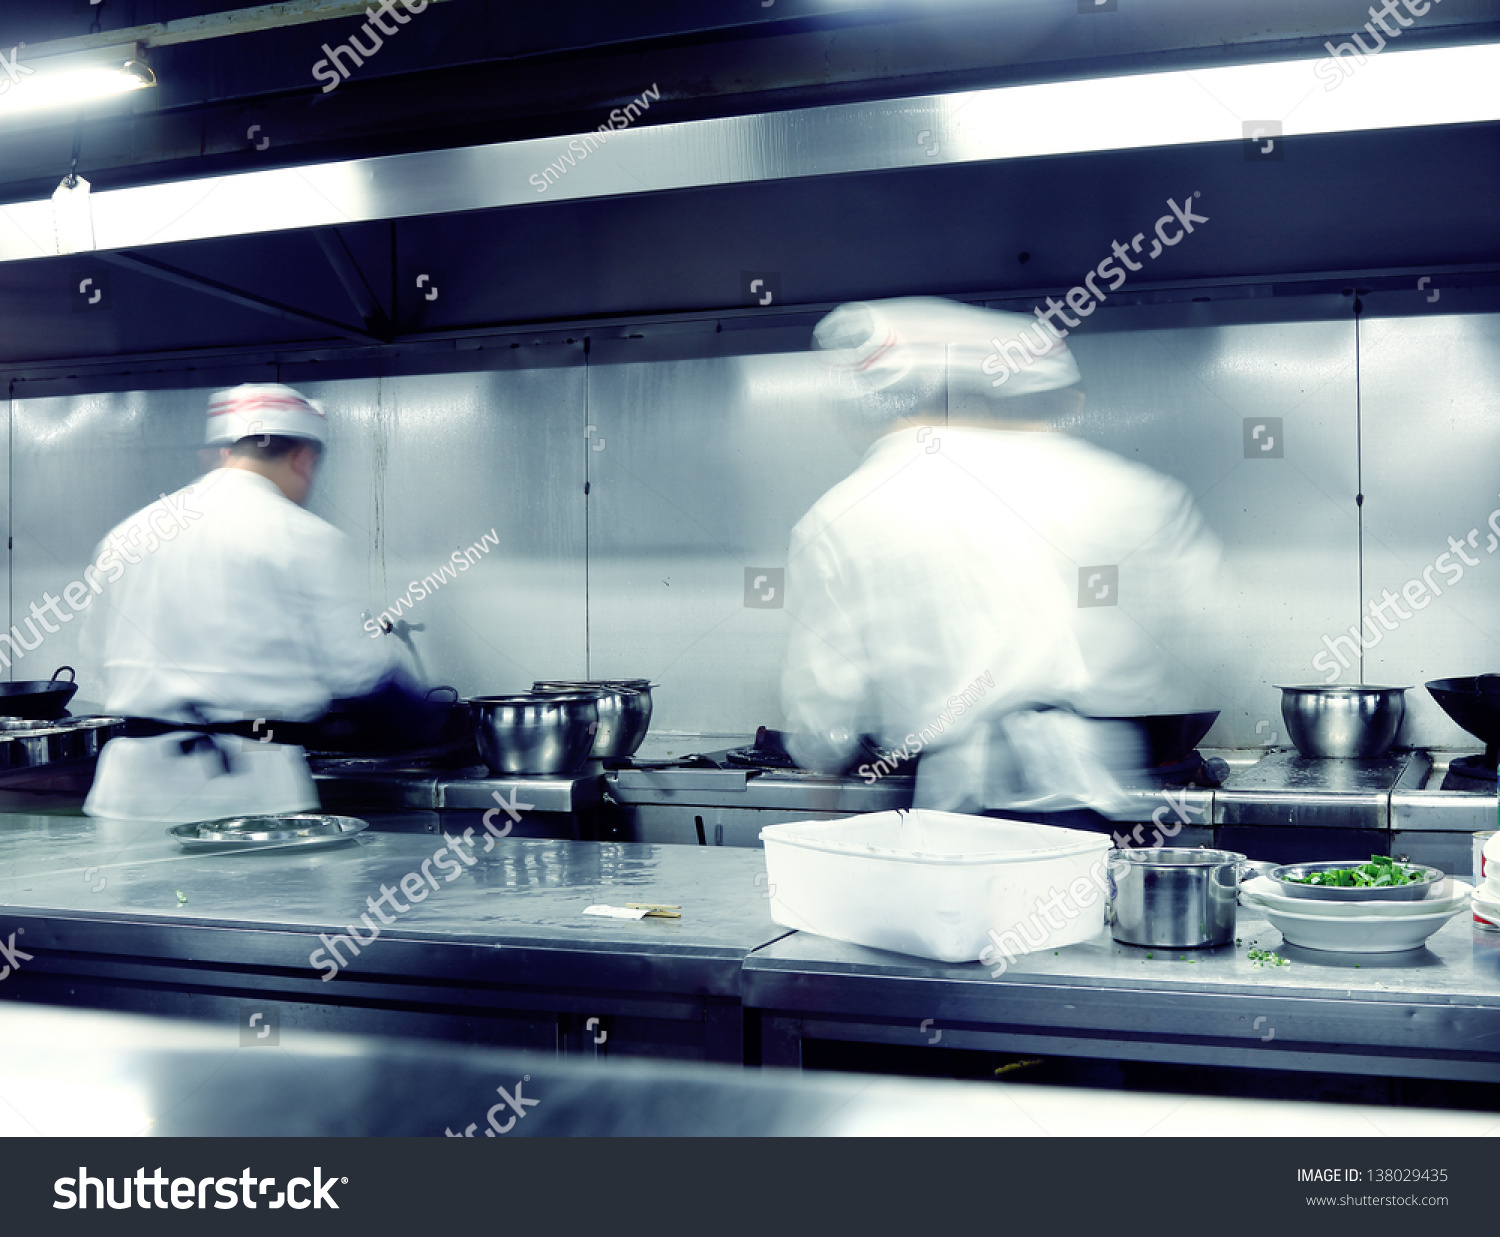 Motion Chefs Restaurant Kitchen Stock Photo (100% Legal Protection ...